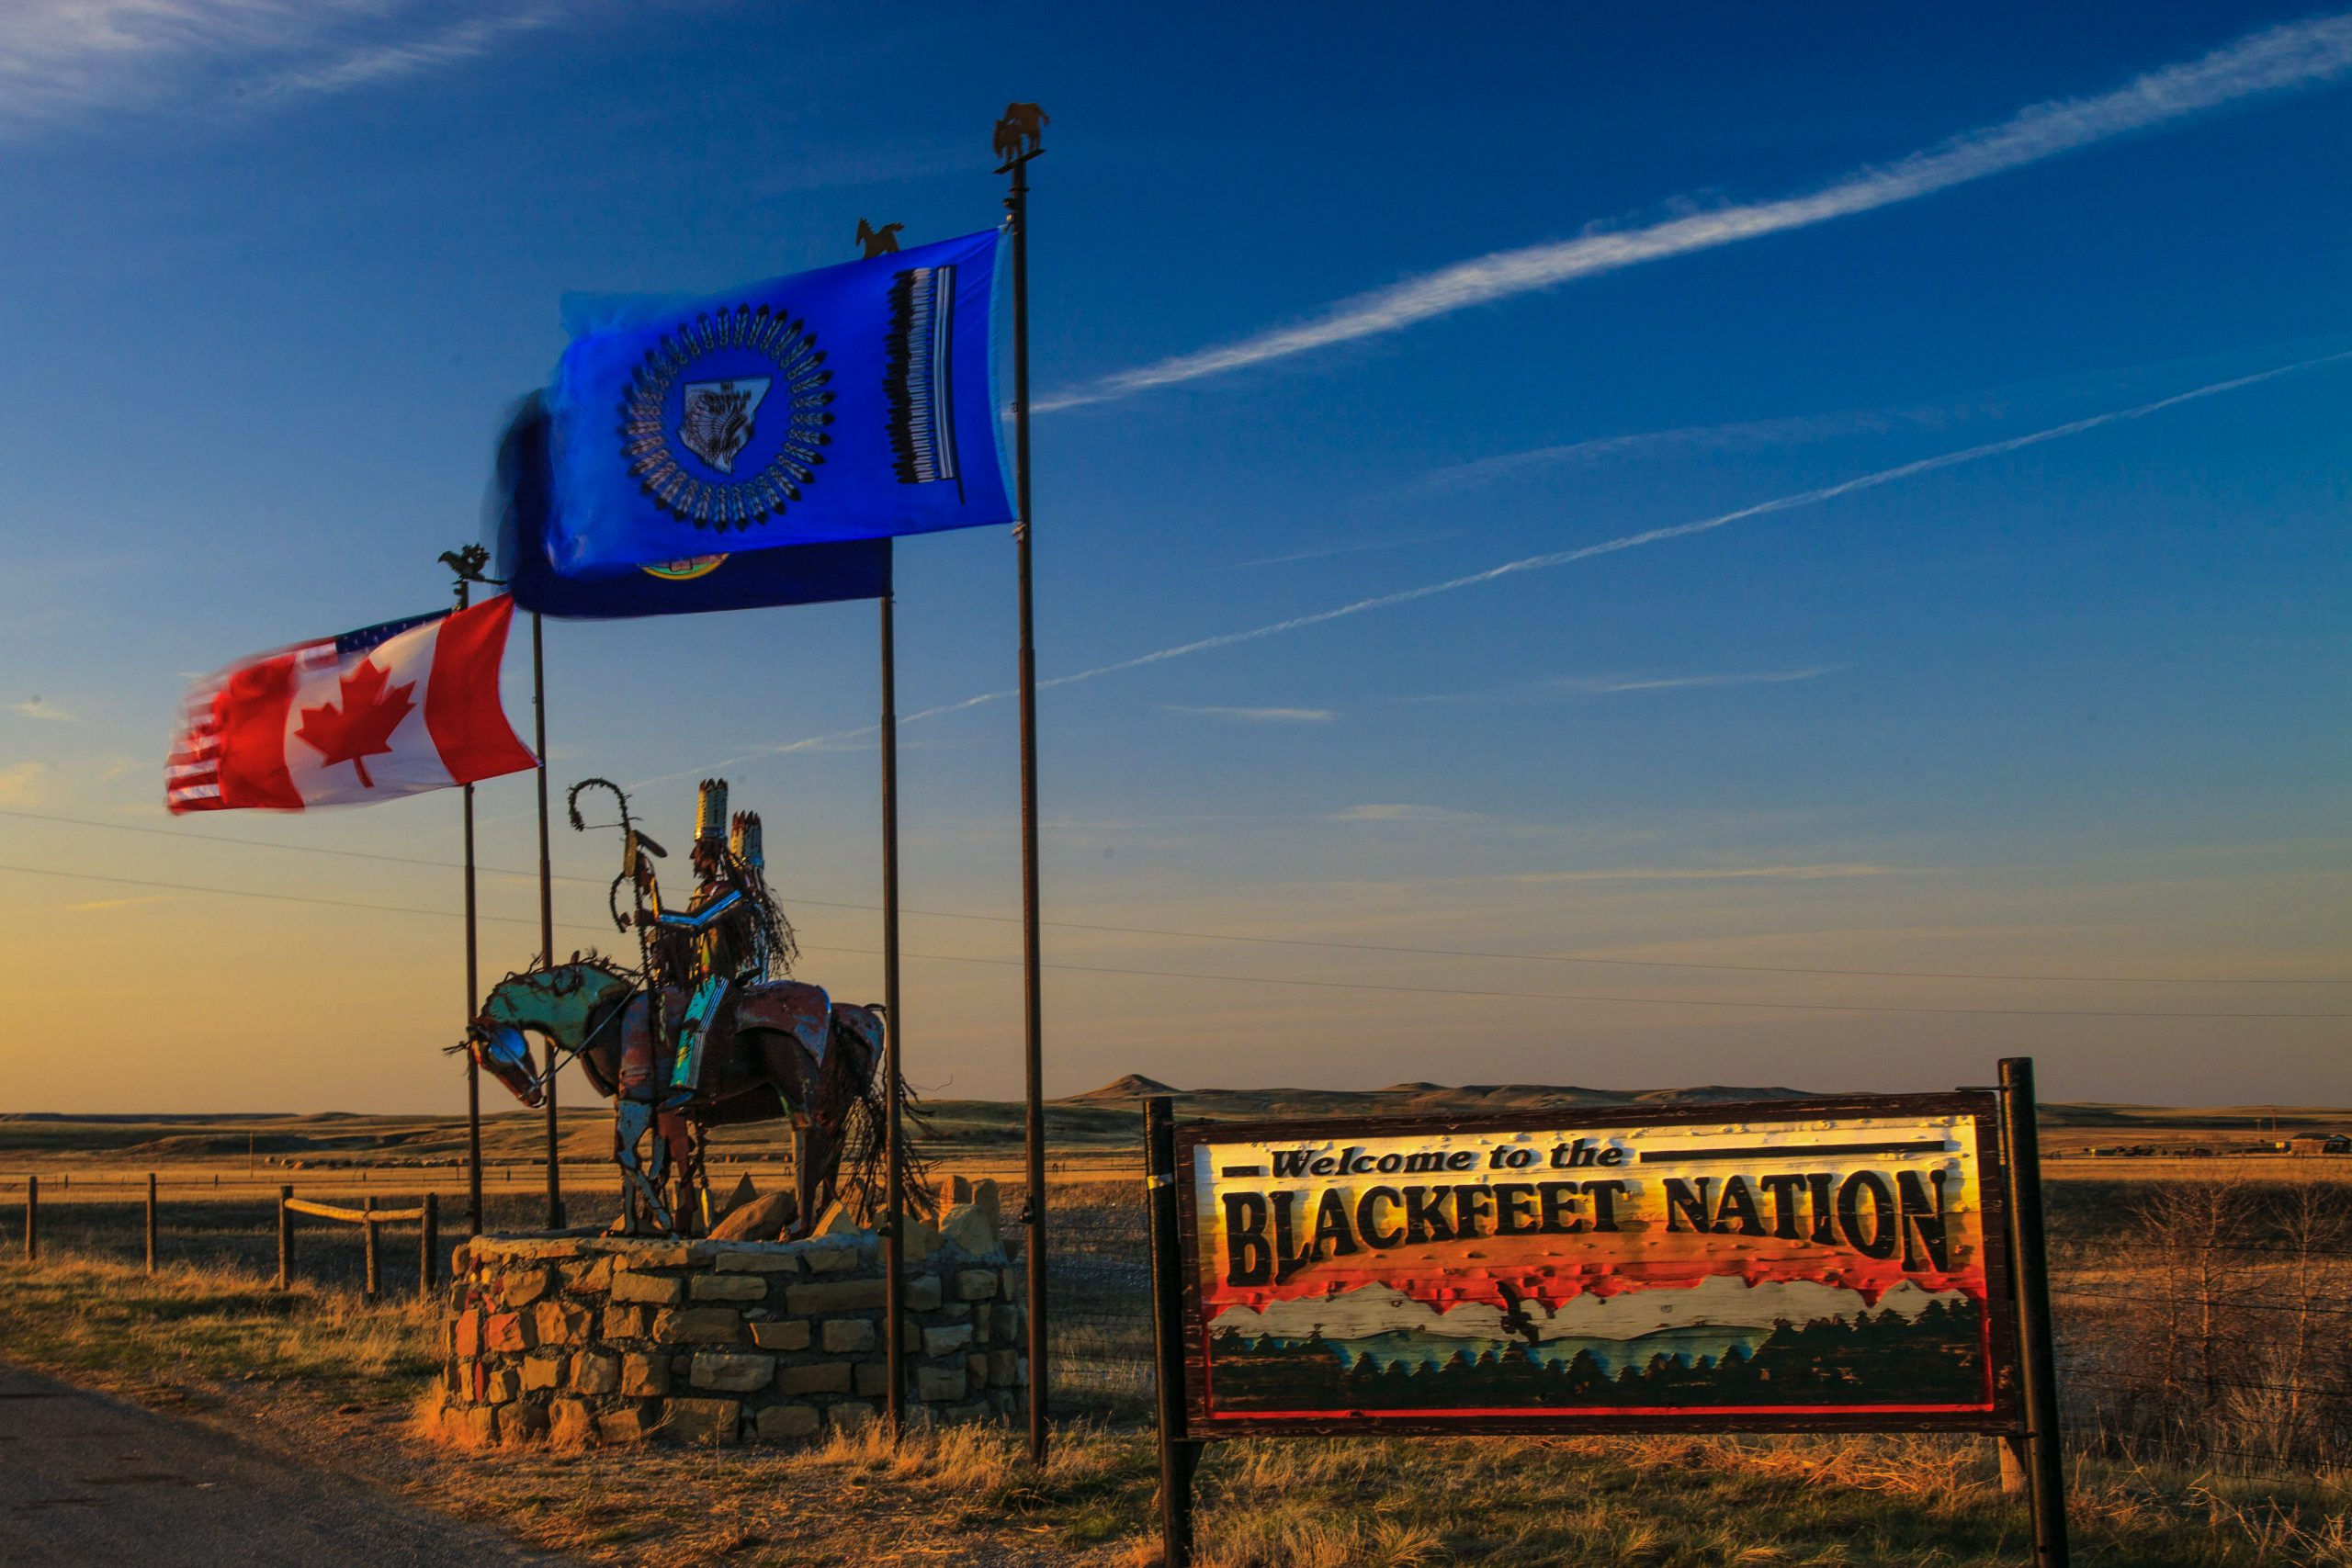 Blackfeet Nation